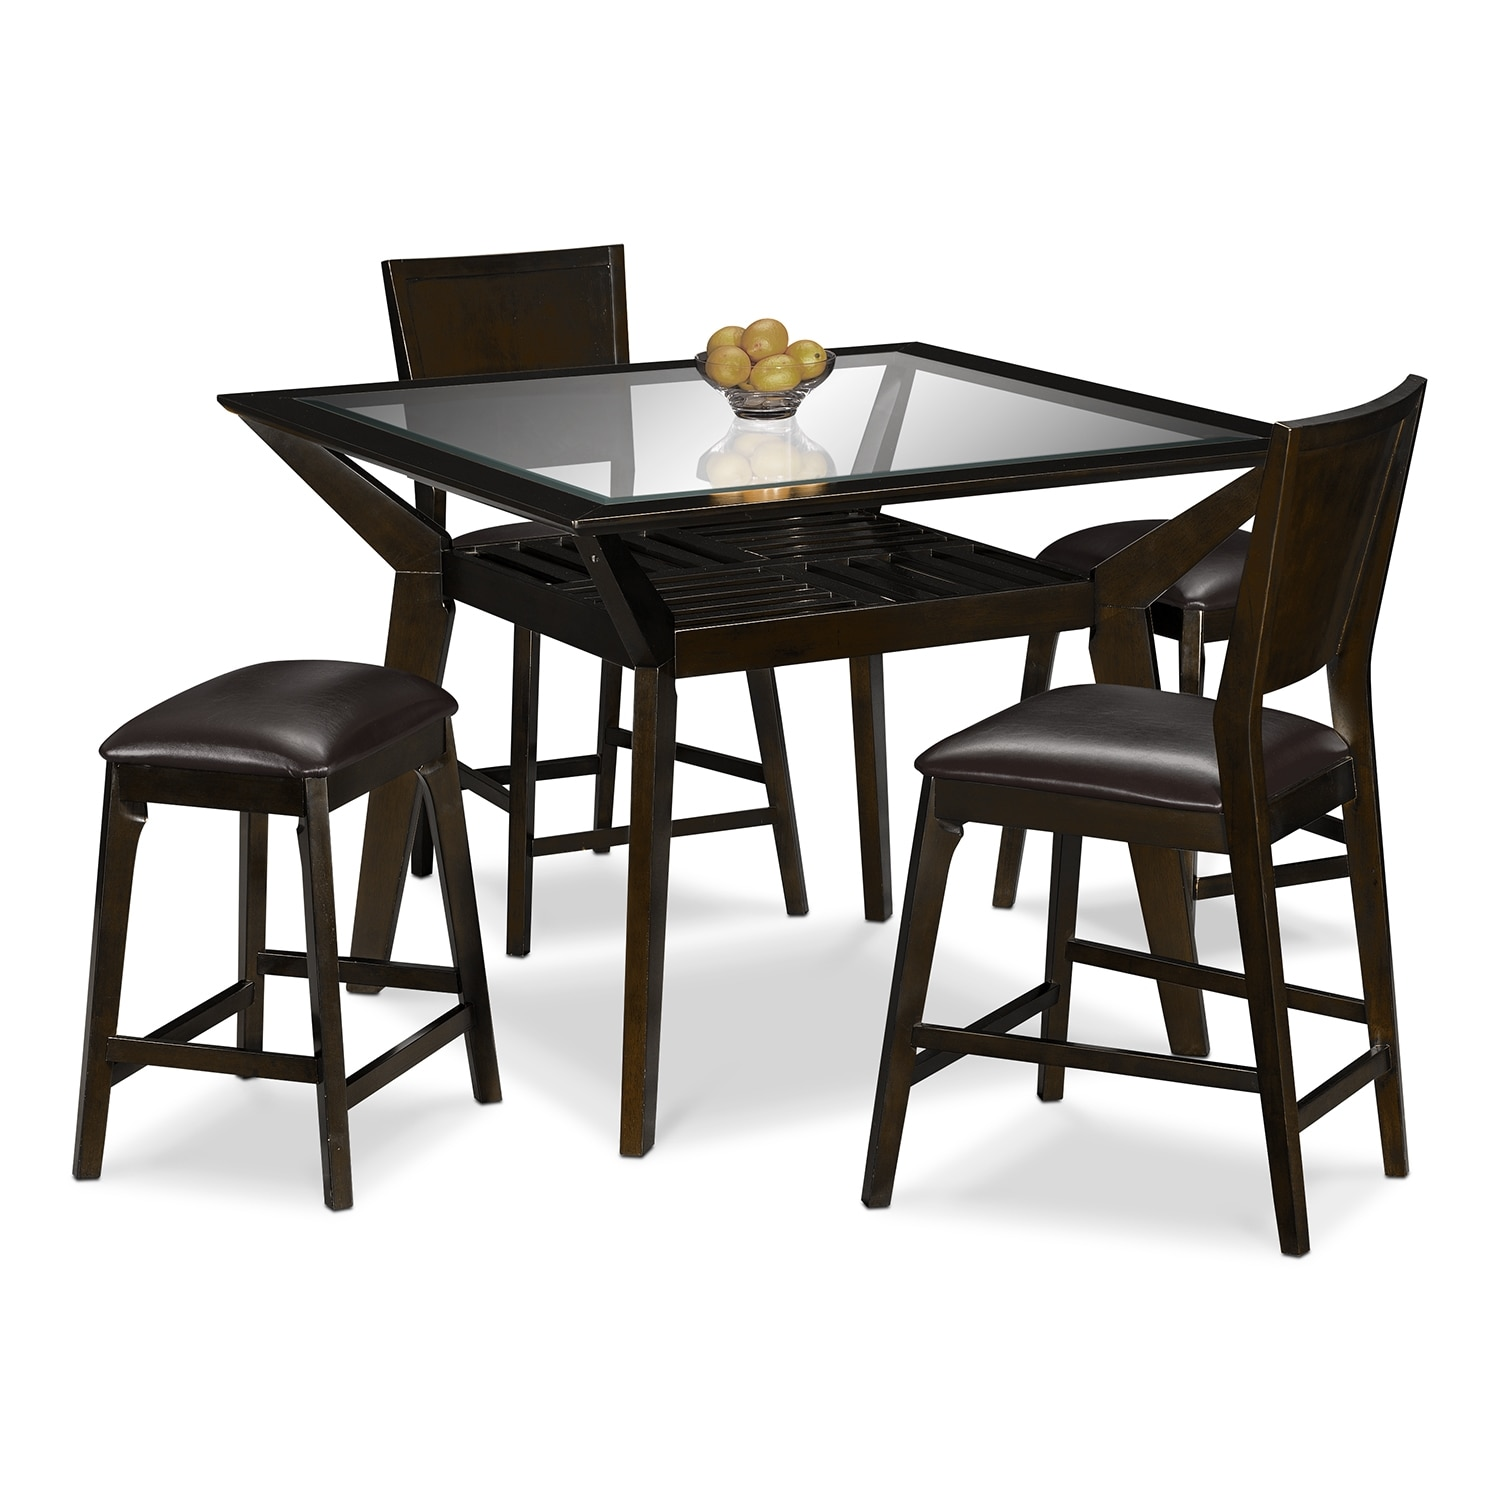 dining room counter height tables | Mystic Counter-Height Table, 2 Chairs and 2 Backless ...